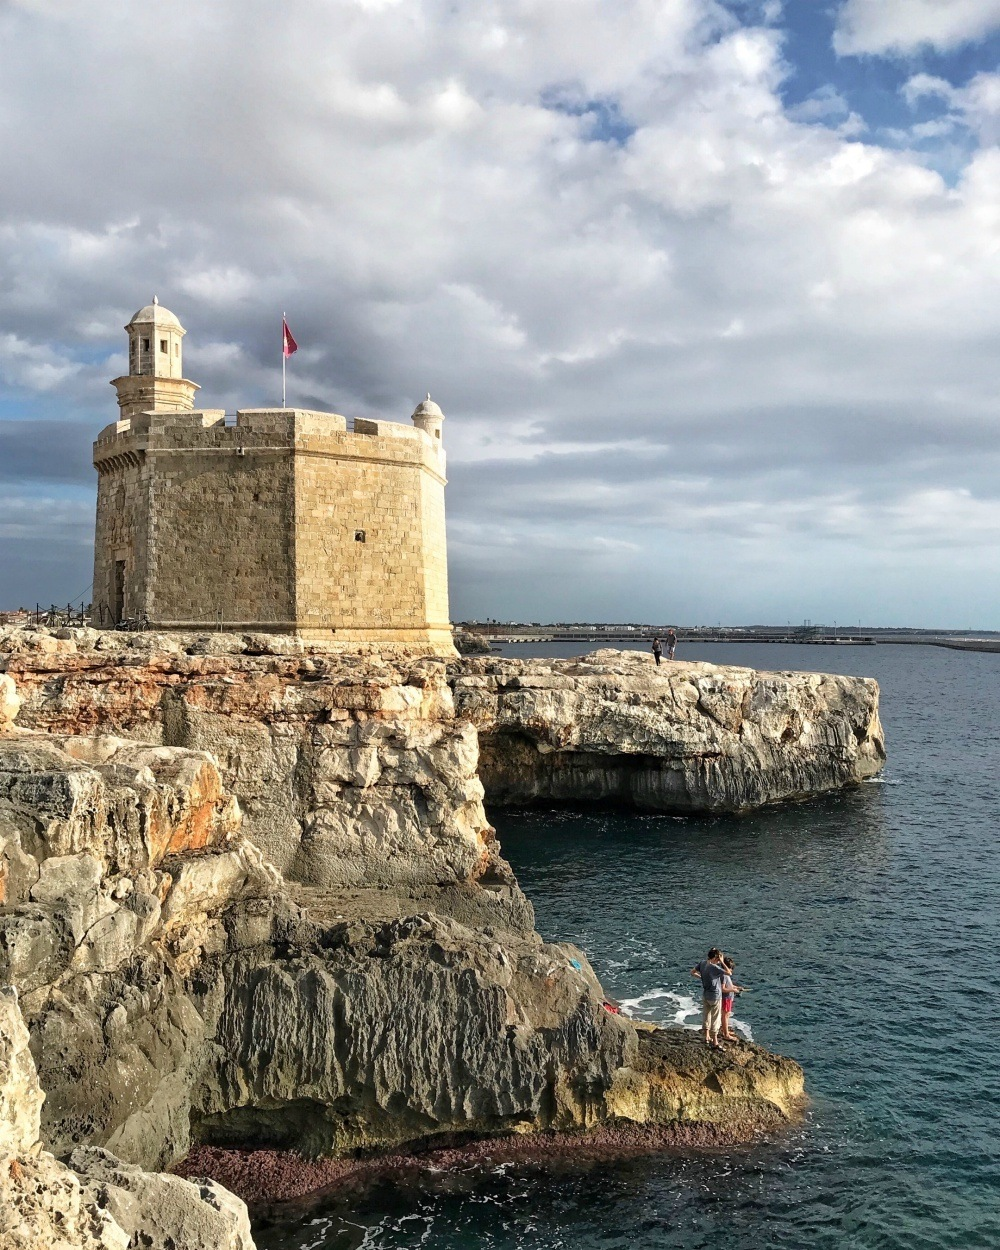 Castell Sant Nicolau in Ciutadella Menorca Spain Photo Heatheronhertravels.com